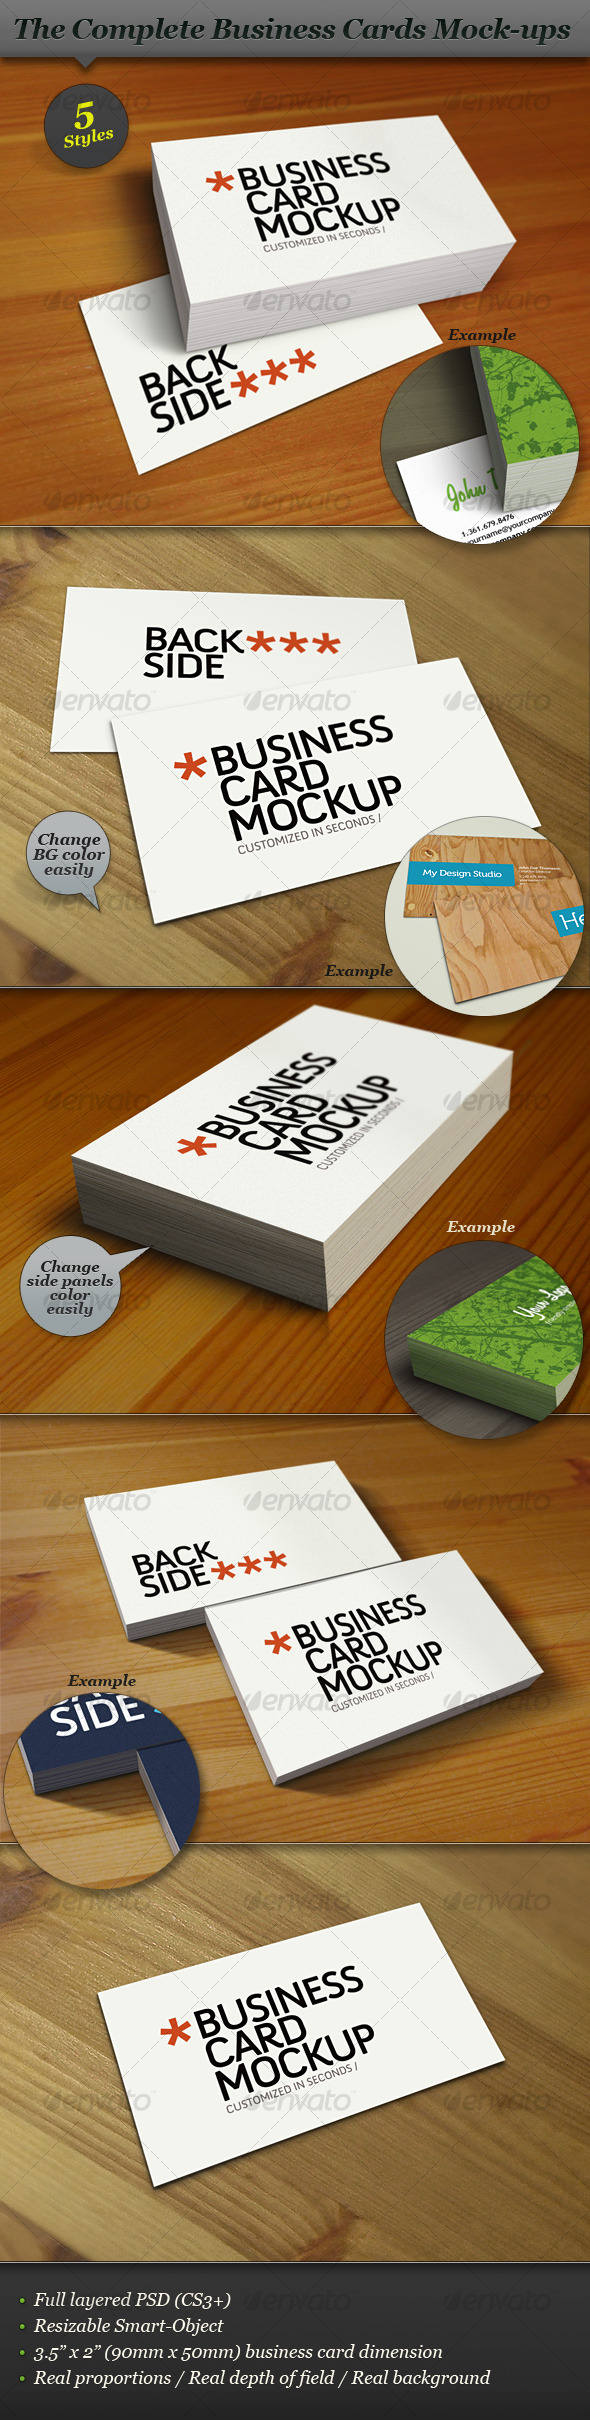 Business Card Mock-up Smart Template Pack - Business Cards Print